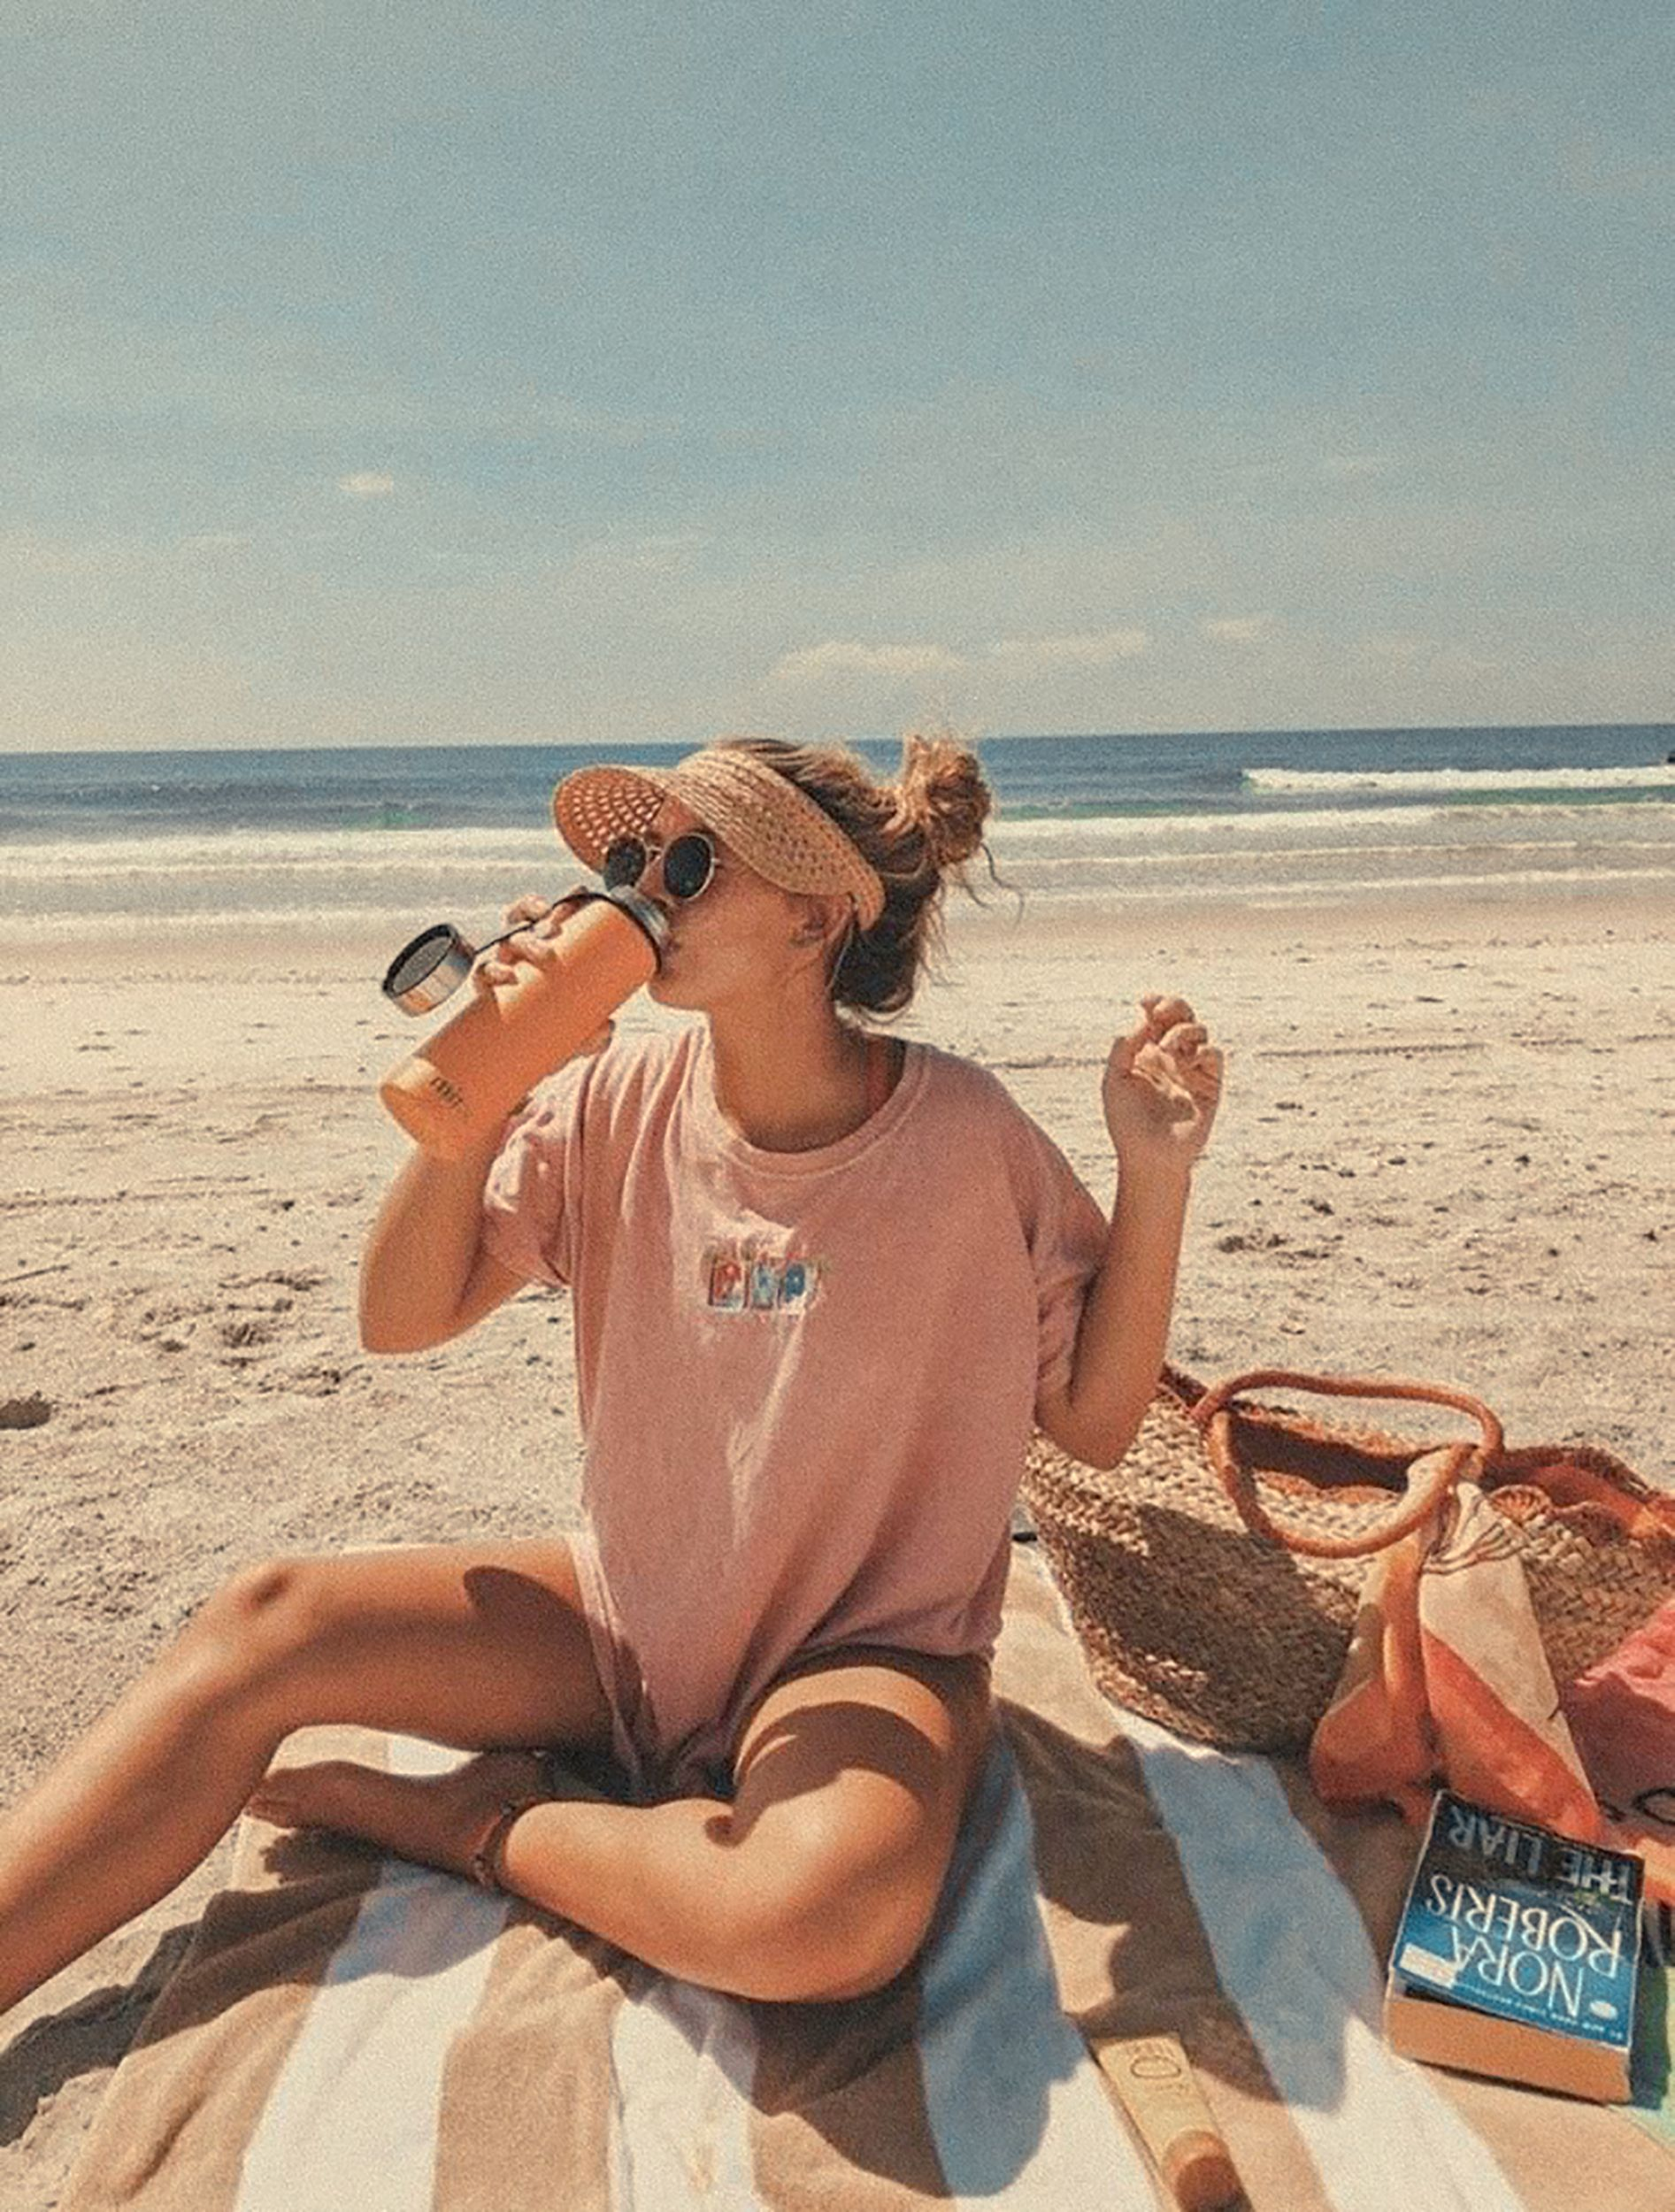 4 Soft Tones Presets Mobile Presets Mobile Filters Summer Presets Lifestyle Presets Cozy Presets Presets Vintage In 2021 Beach Outfit Beach Photoshoot Women S Summer Fashion Girly beach vibes girly cute vintage